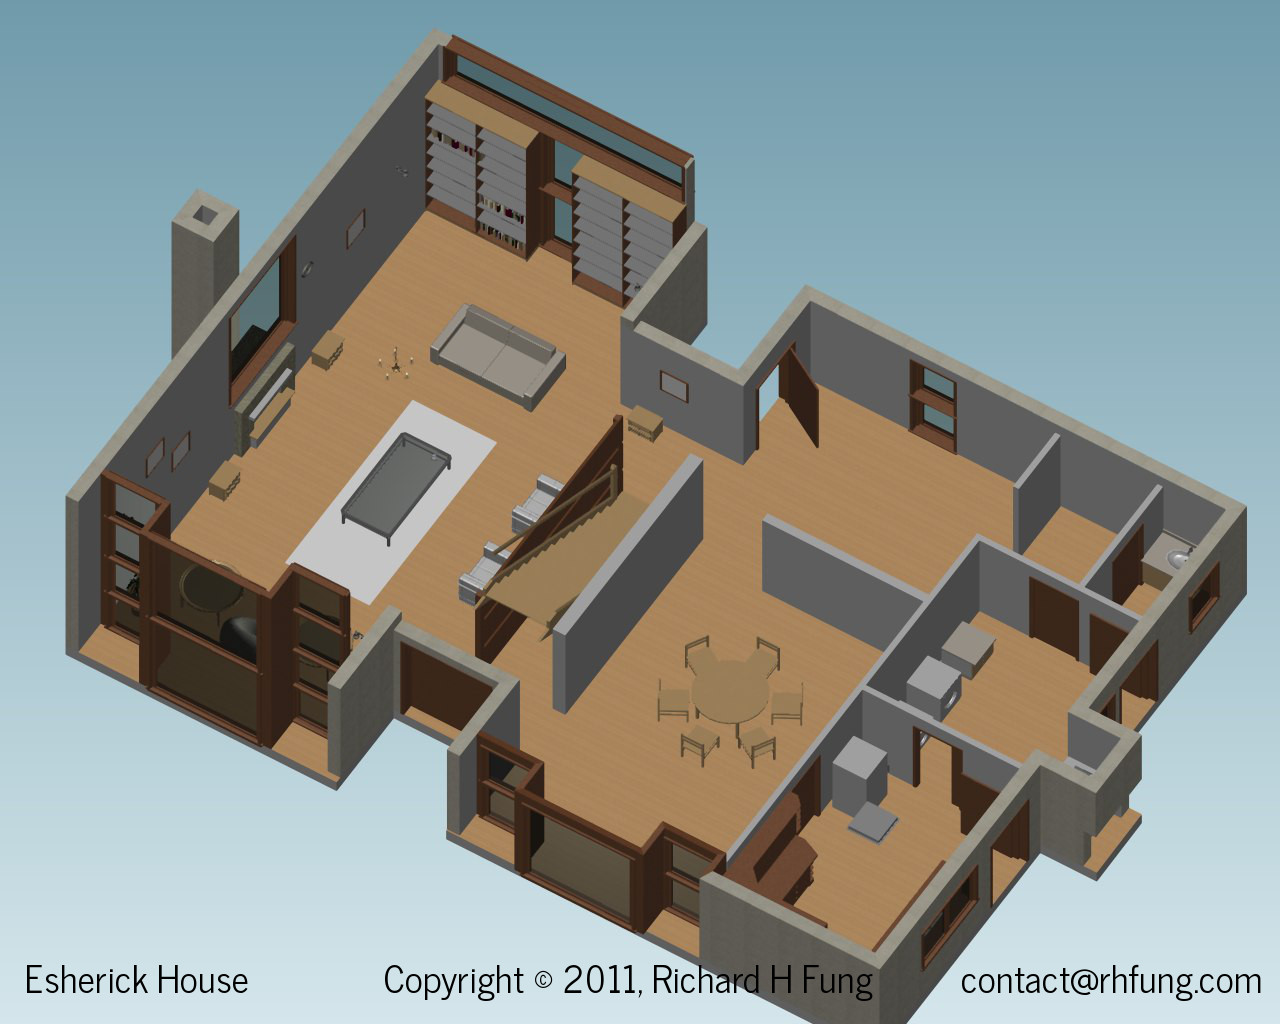 Esherick House isometric view of the first floor